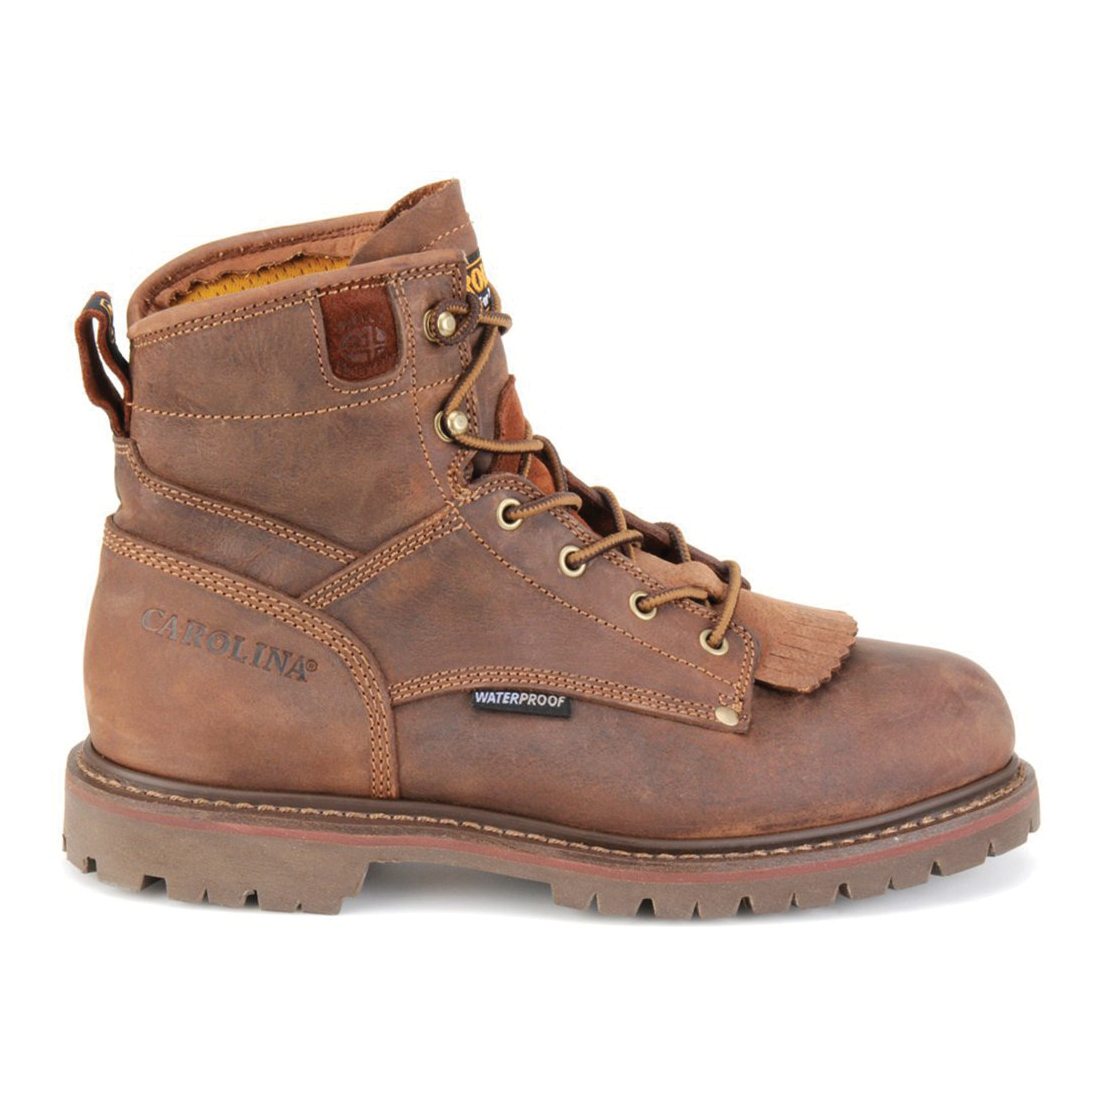 CAROLINA® CA5585-11EE General Purpose Work Boots, Men's, SZ 11 EE, 7 in H, Aluminum Toe, Bandit™ Stone Leather Upper, Rubber Outsole, Resists: Abrasion and Water, Specifications Met: ASTM I/75 C/75